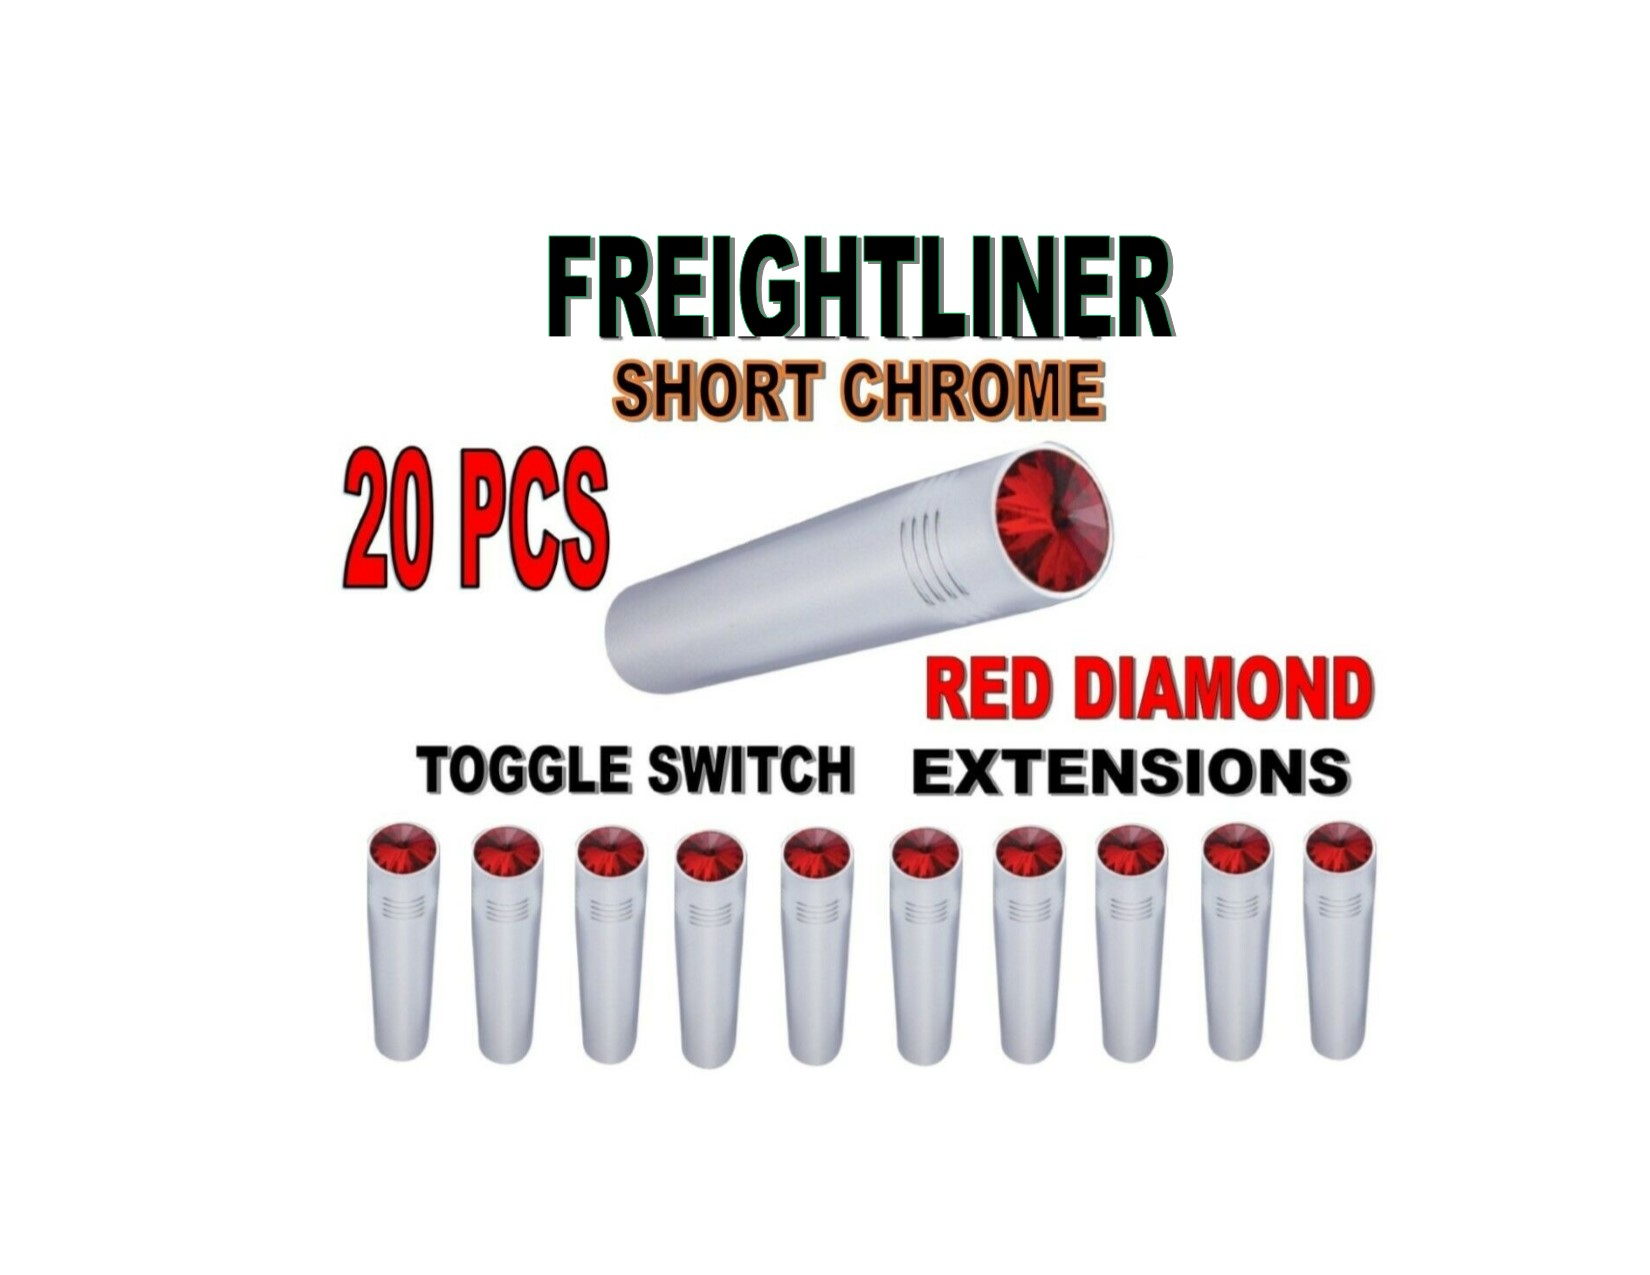 Toggle Switch Ext. Short Chrome - RED Diamond (X20) FREIGHTLINER